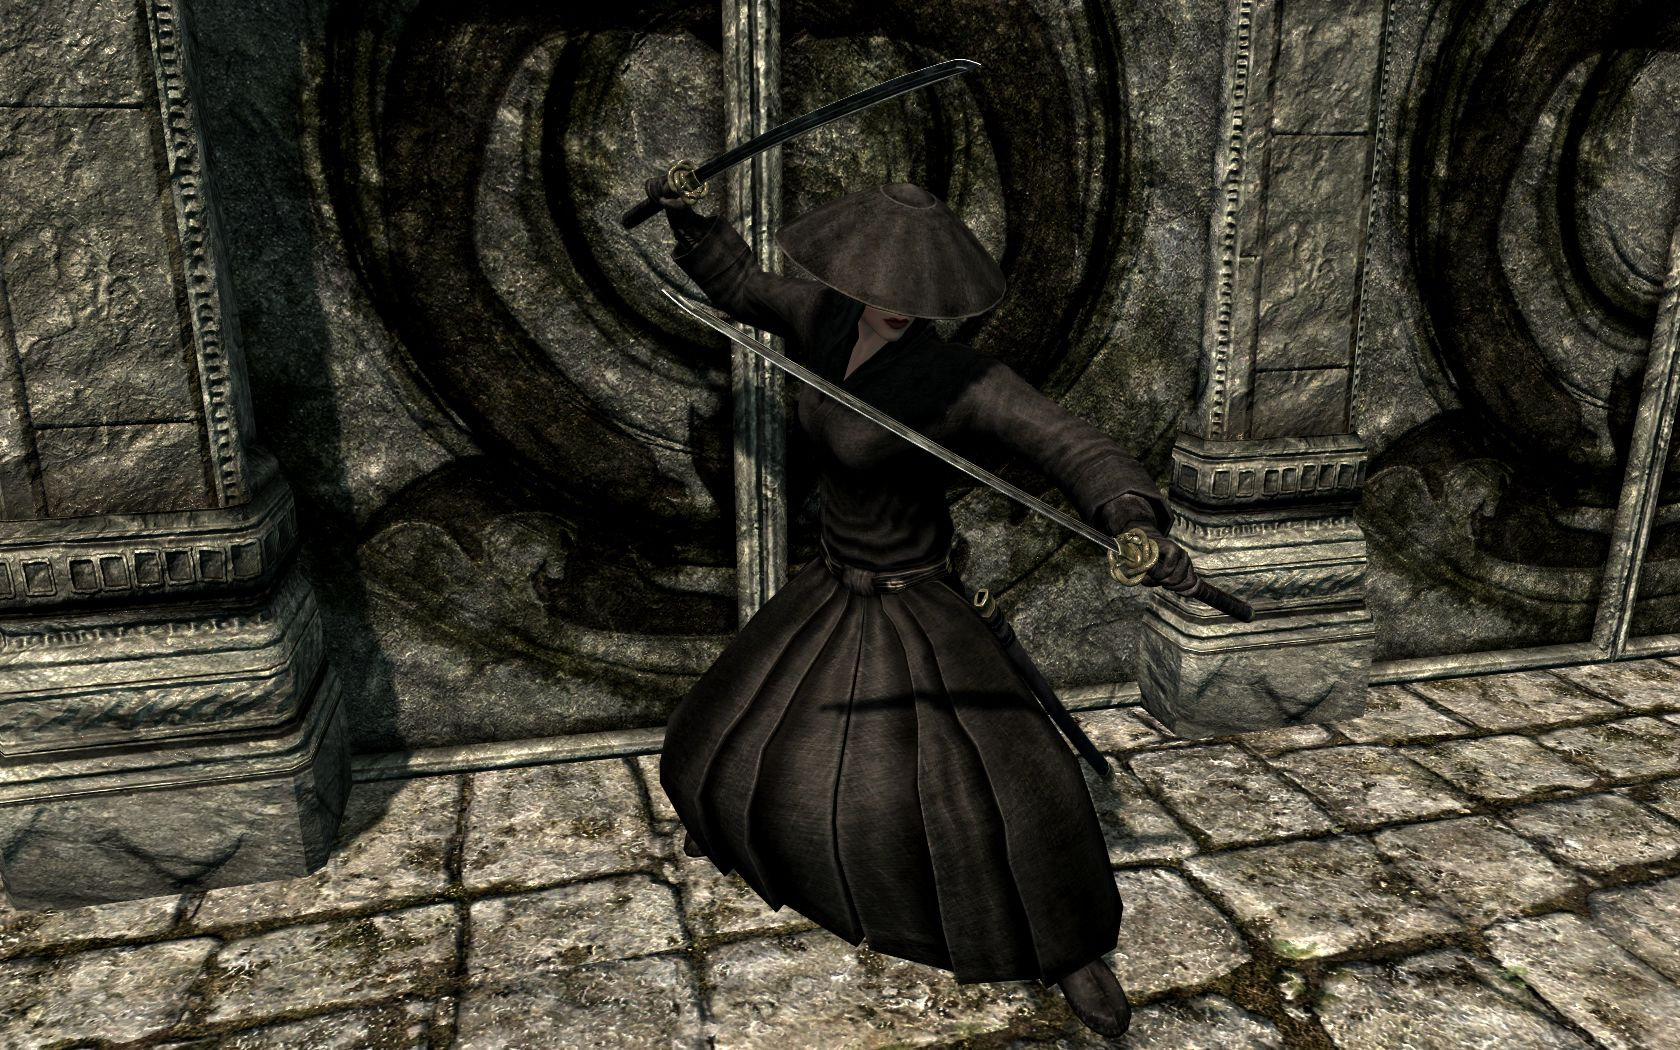 Black gloves skyrim - Black Gloves Skyrim 48